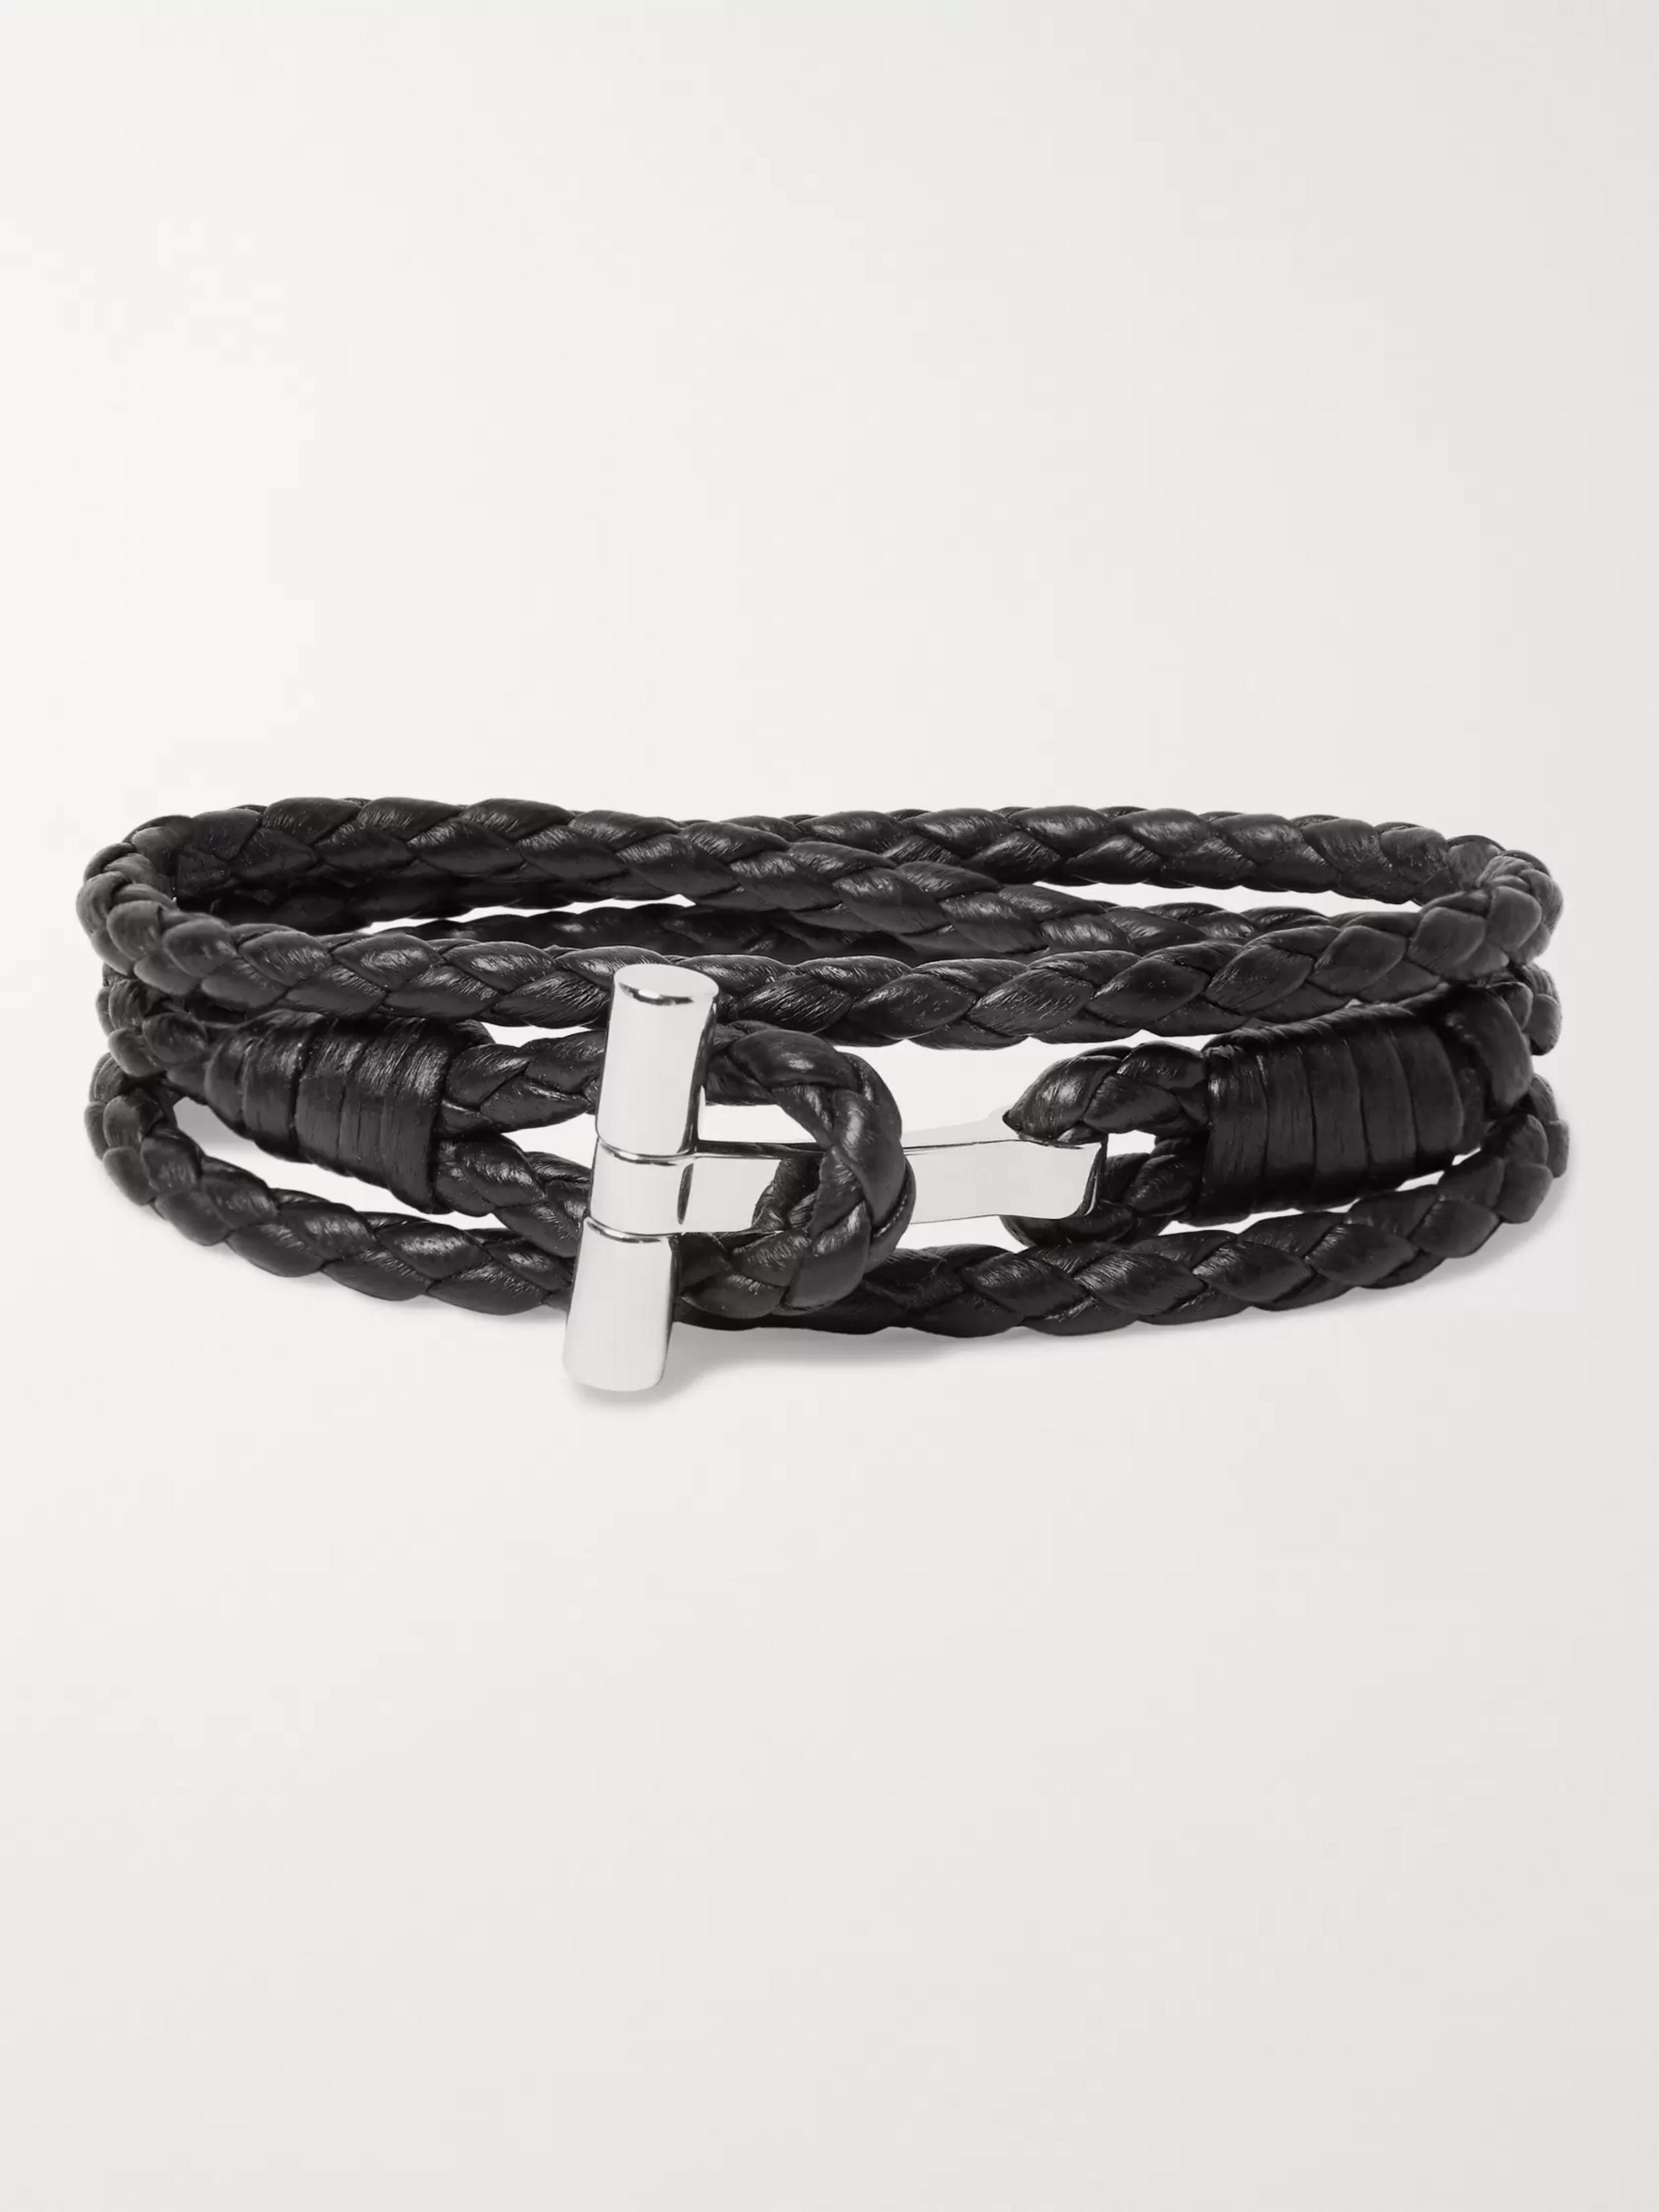 TOM FORD Woven Leather and Palladium-Plated Wrap Bracelet